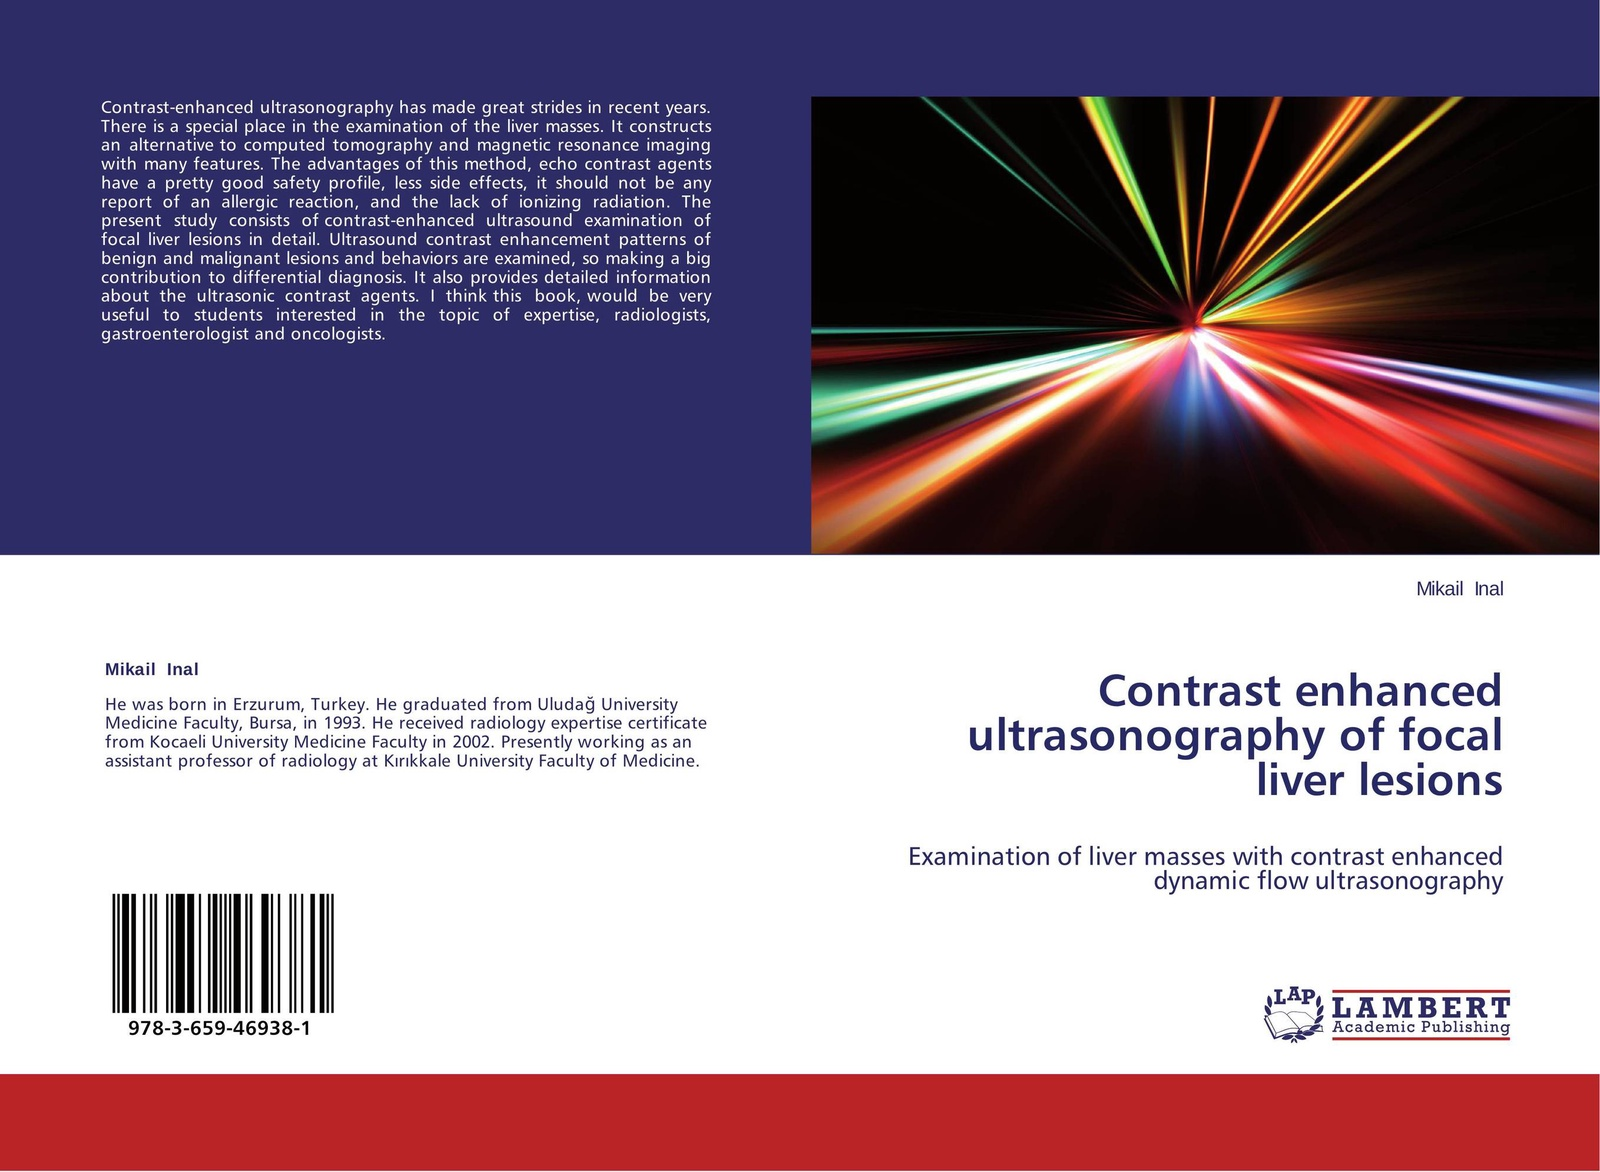 Mikail Inal Contrast enhanced ultrasonography of focal liver lesions john deutsch c atlas of endoscopic ultrasonography